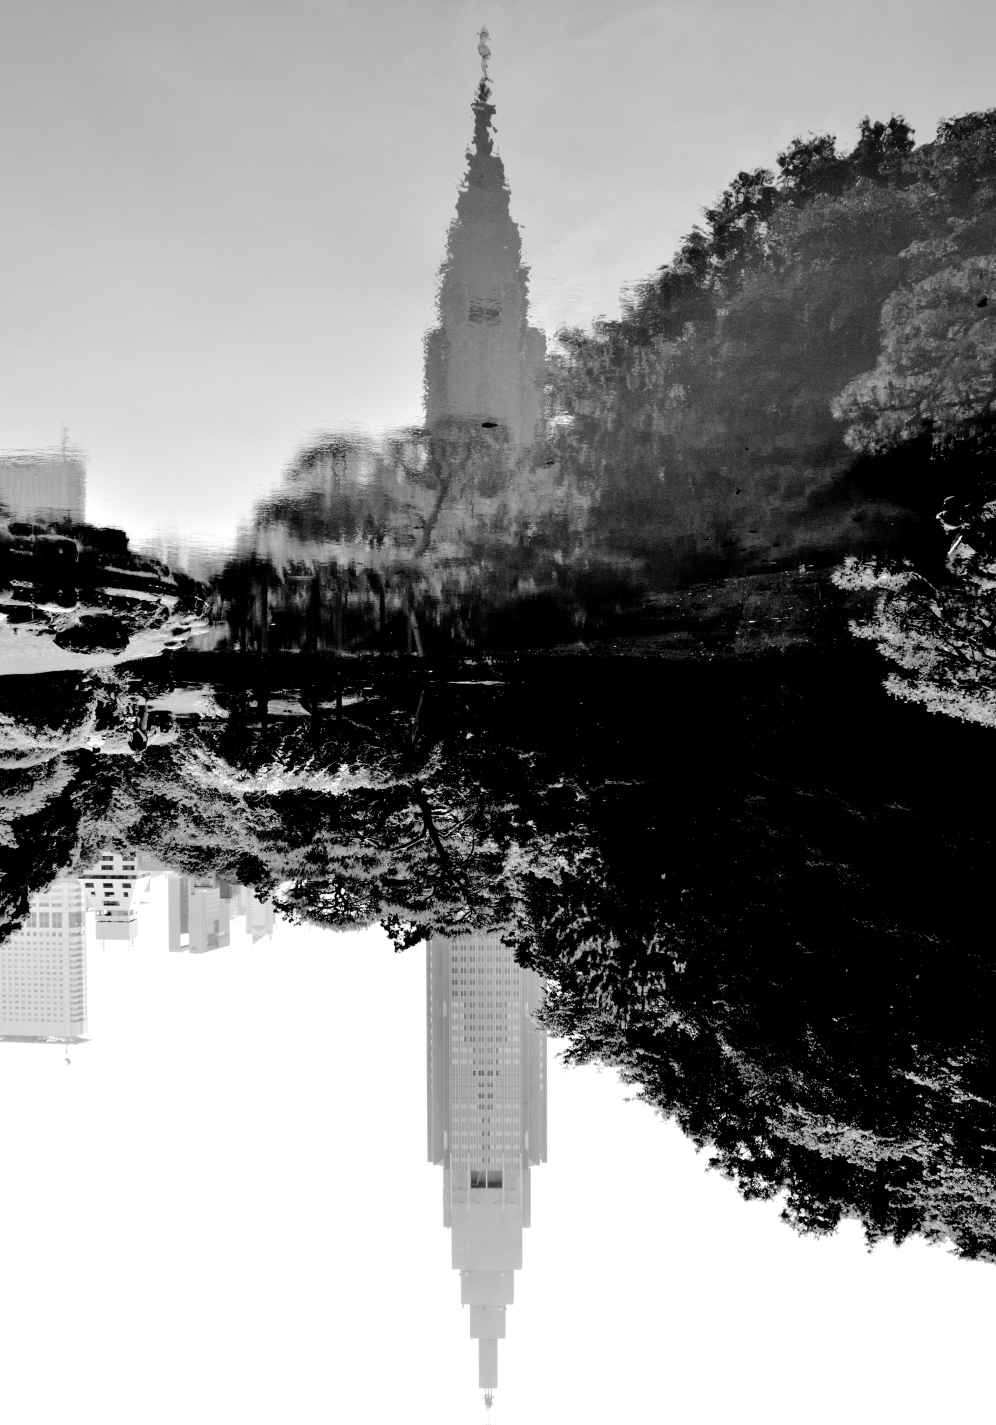 The vivid NTT DoCoMo building reflected in one of the many parks ponds.